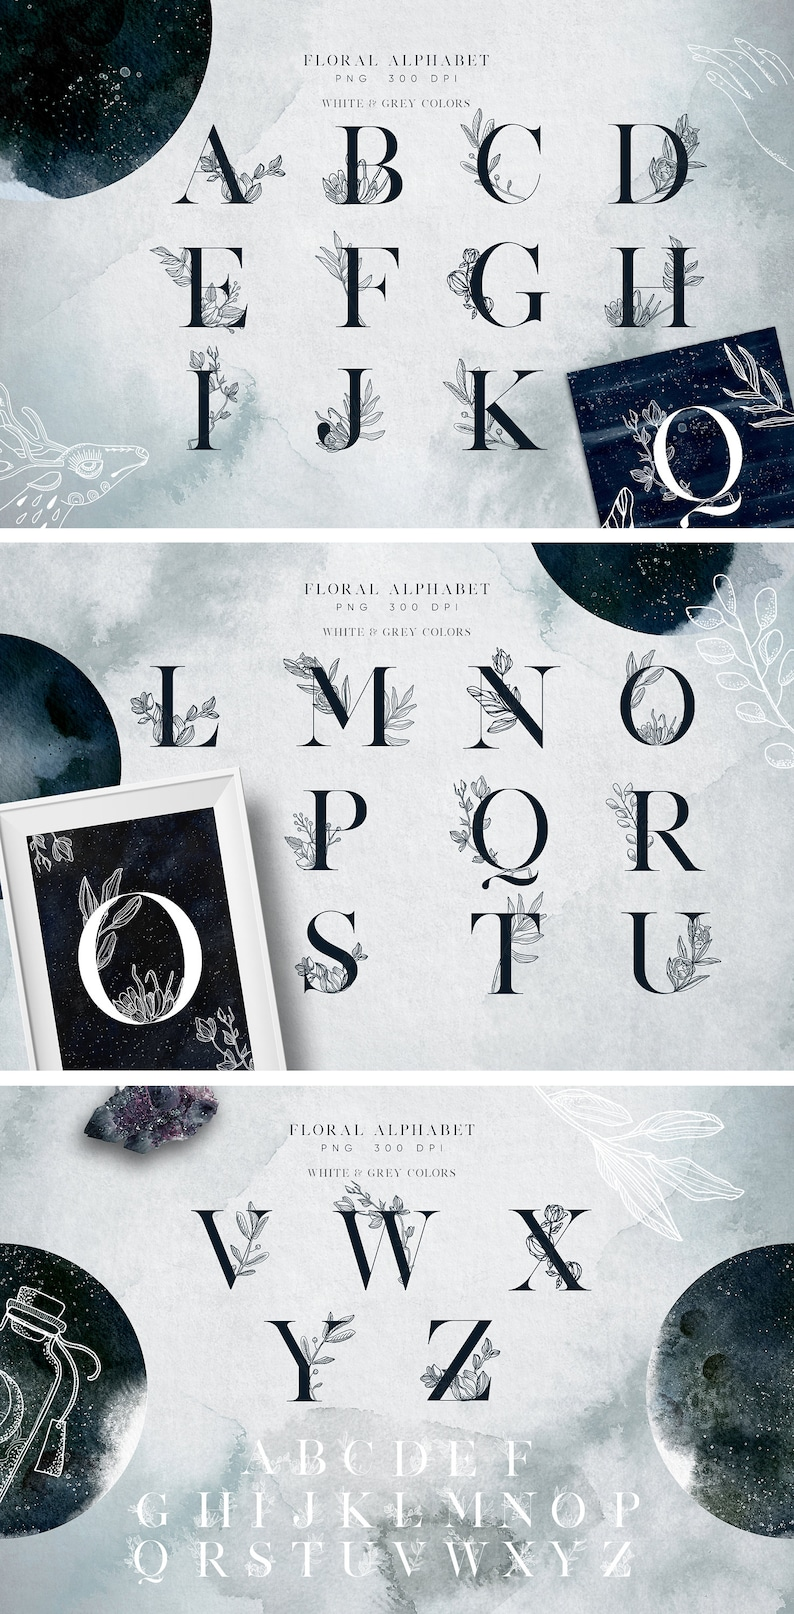 Lunare Alchemy Magic Mysterious Graphic Set Witchcraft collection Esoteric illustrations Digital watercolor clipart 180 elements